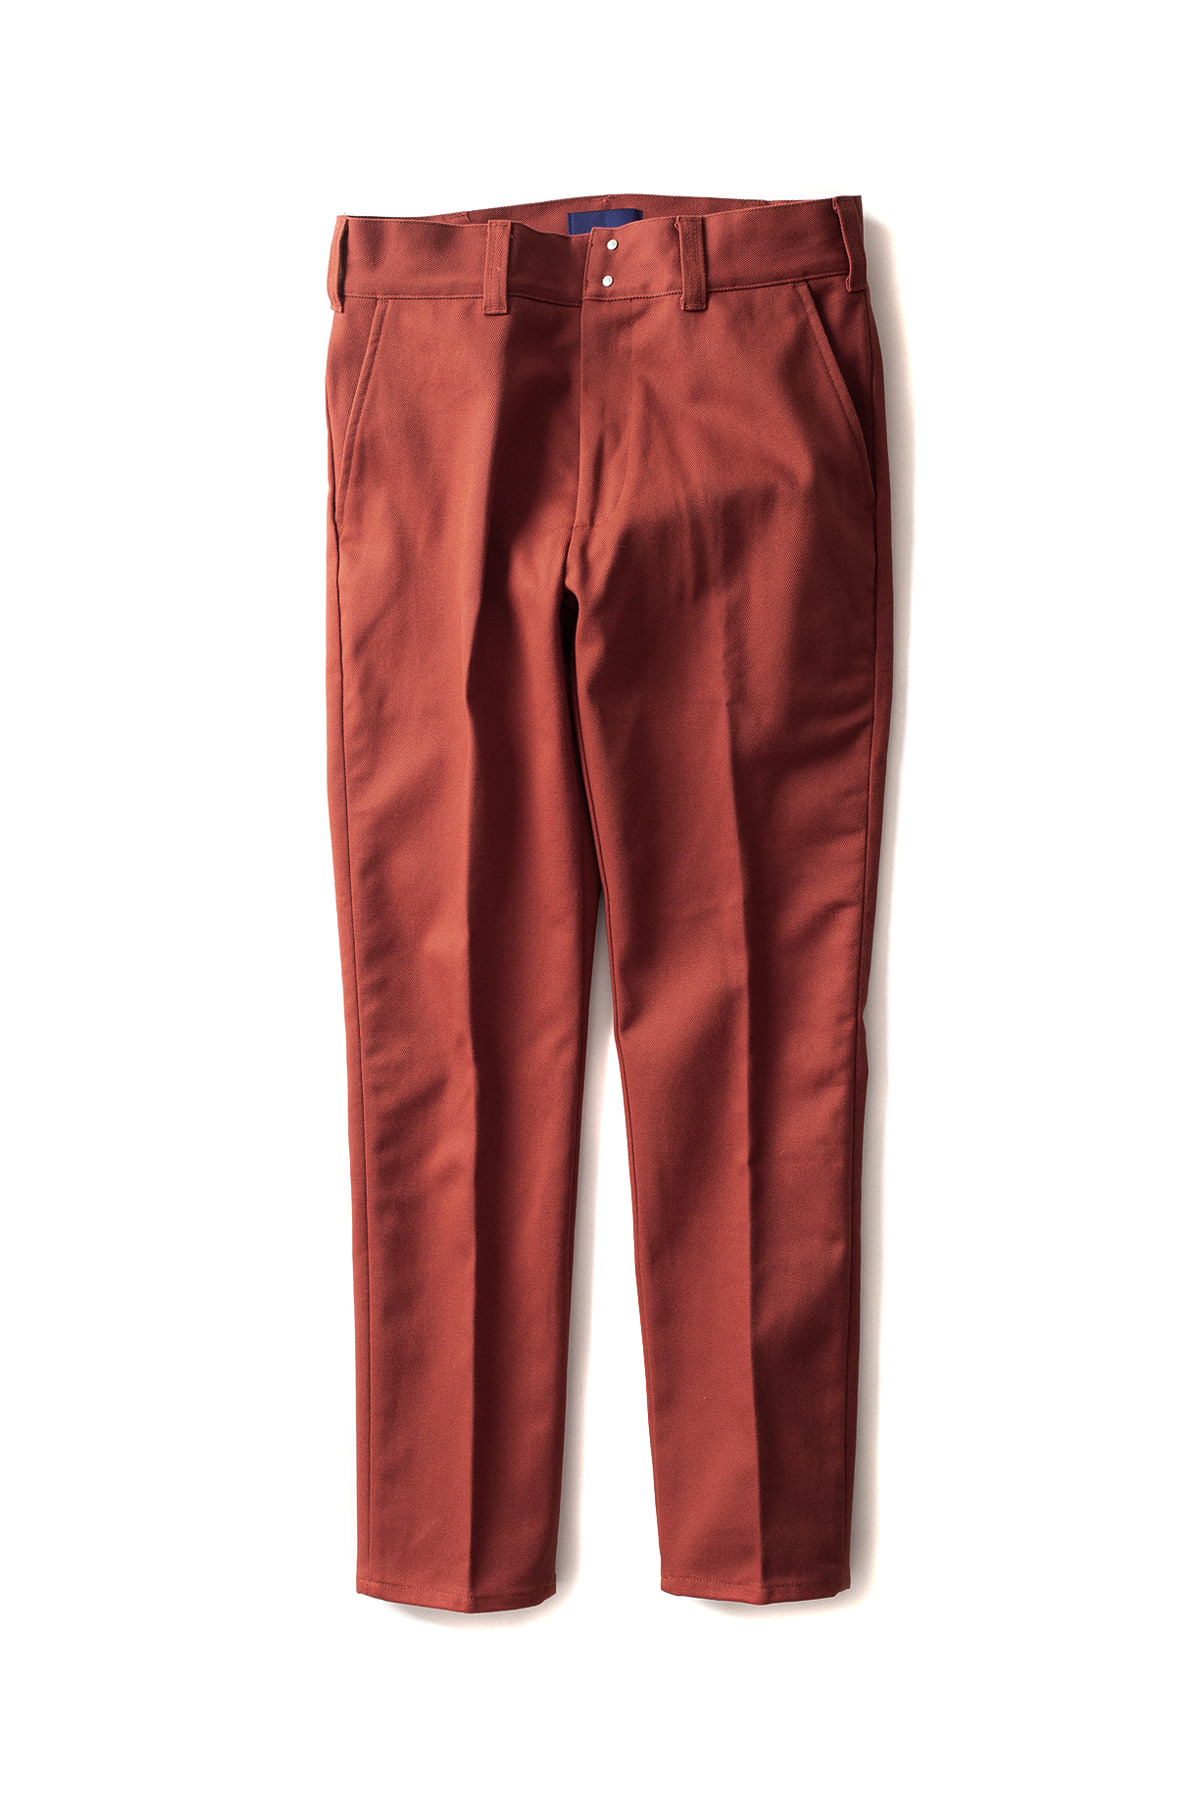 Ordinary fits #WHITE : Ringo Pants (Red)